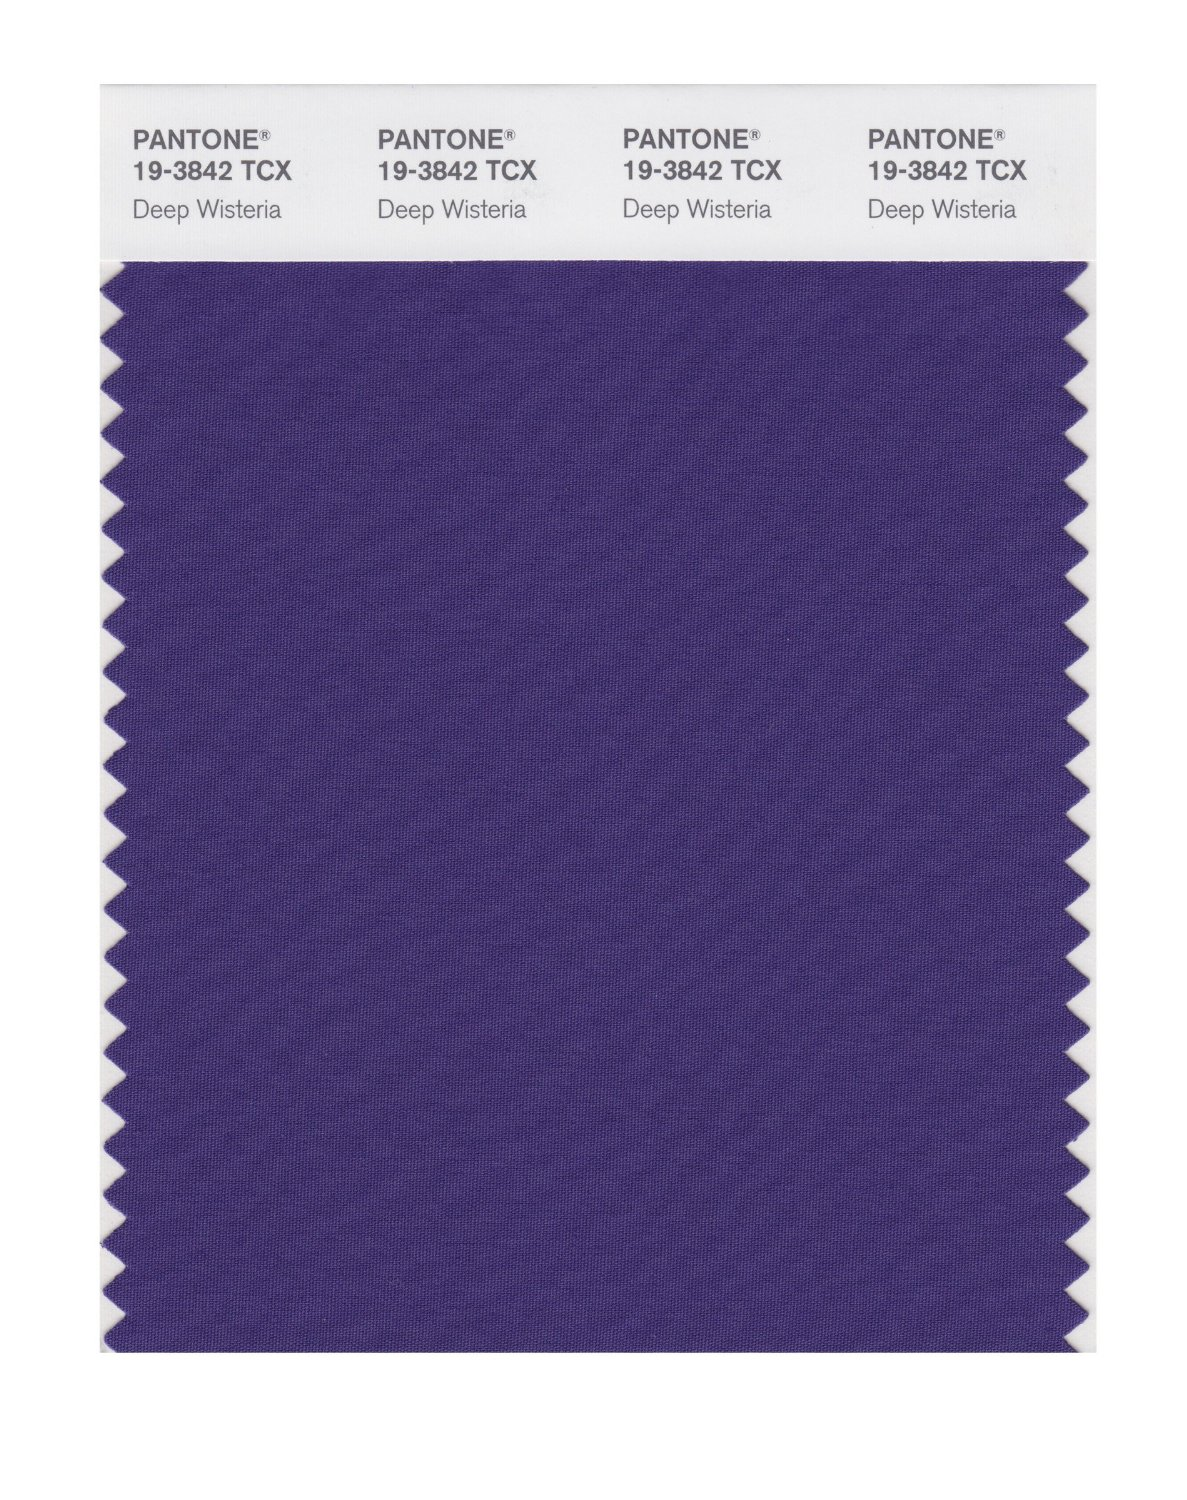 Pantone Smart Swatch 19-3842 Deep Wisteria